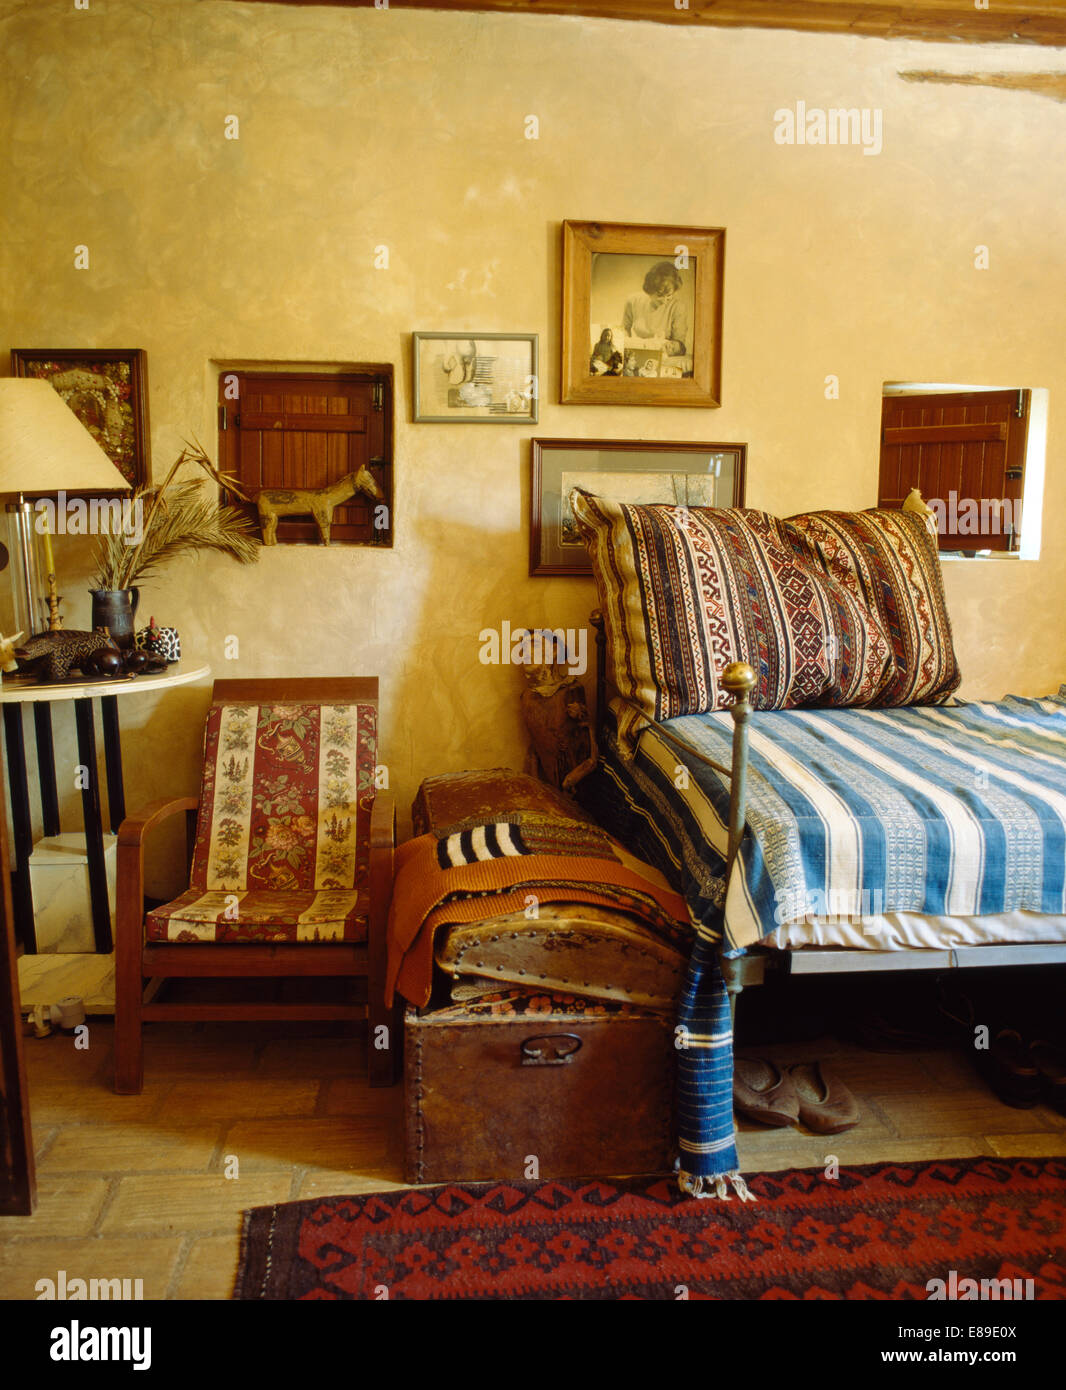 Old wooden chair styles - Stock Photo Vintage Wooden Chair And Old Wooden Chest In Ethnic Style Country Bedroom With Blue Striped Bed Cover